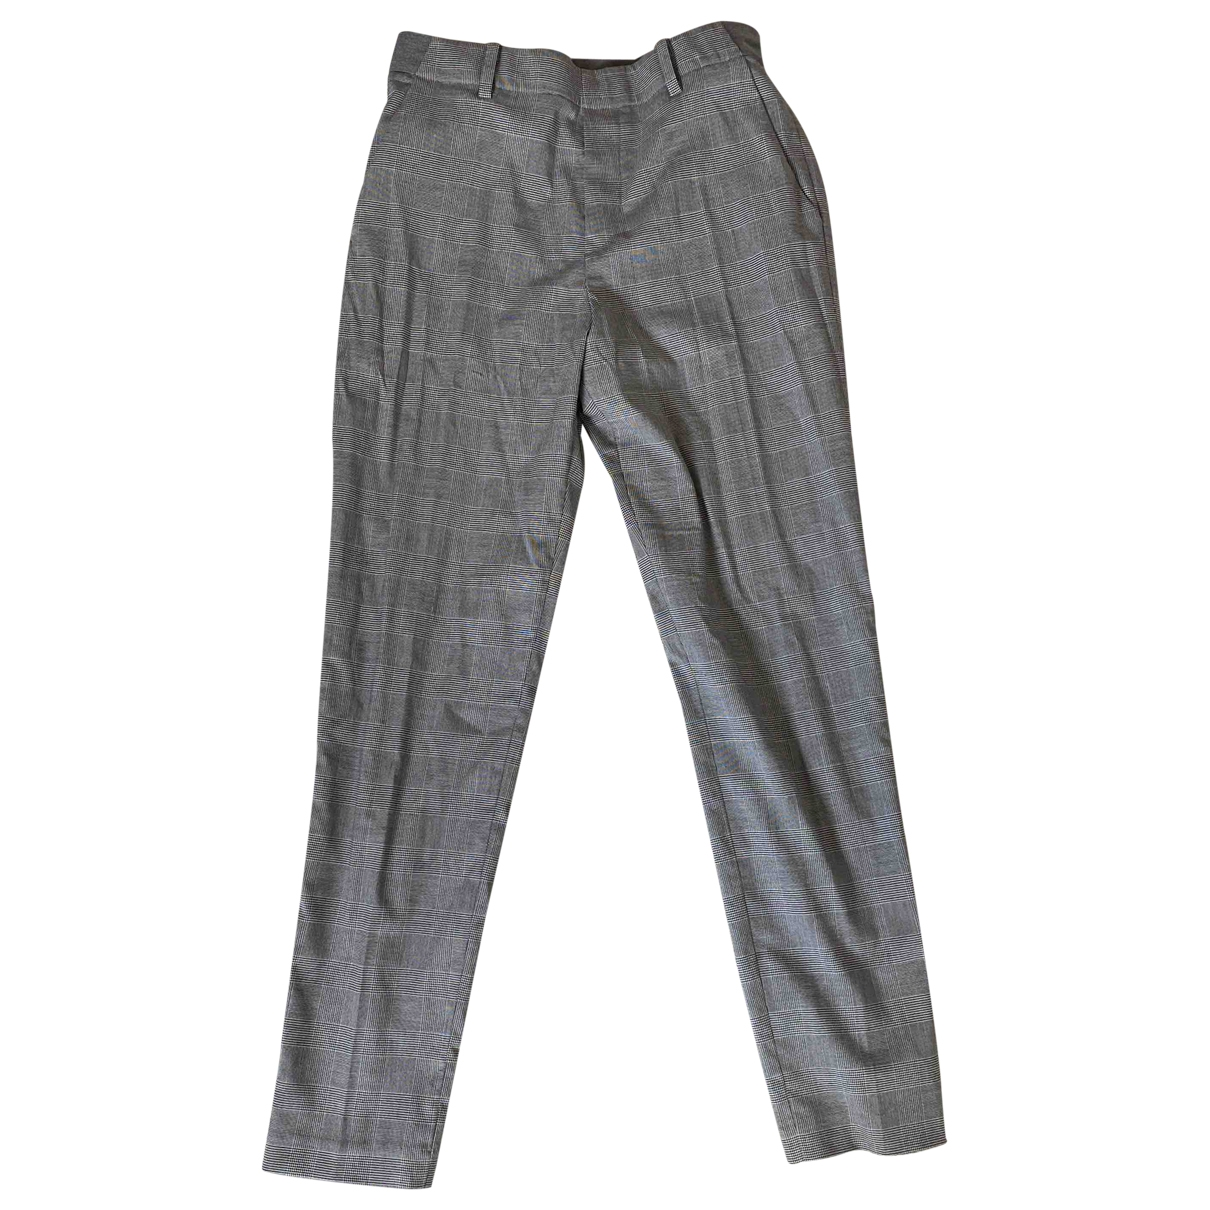 Uniqlo \N Grey Trousers for Women 34 FR